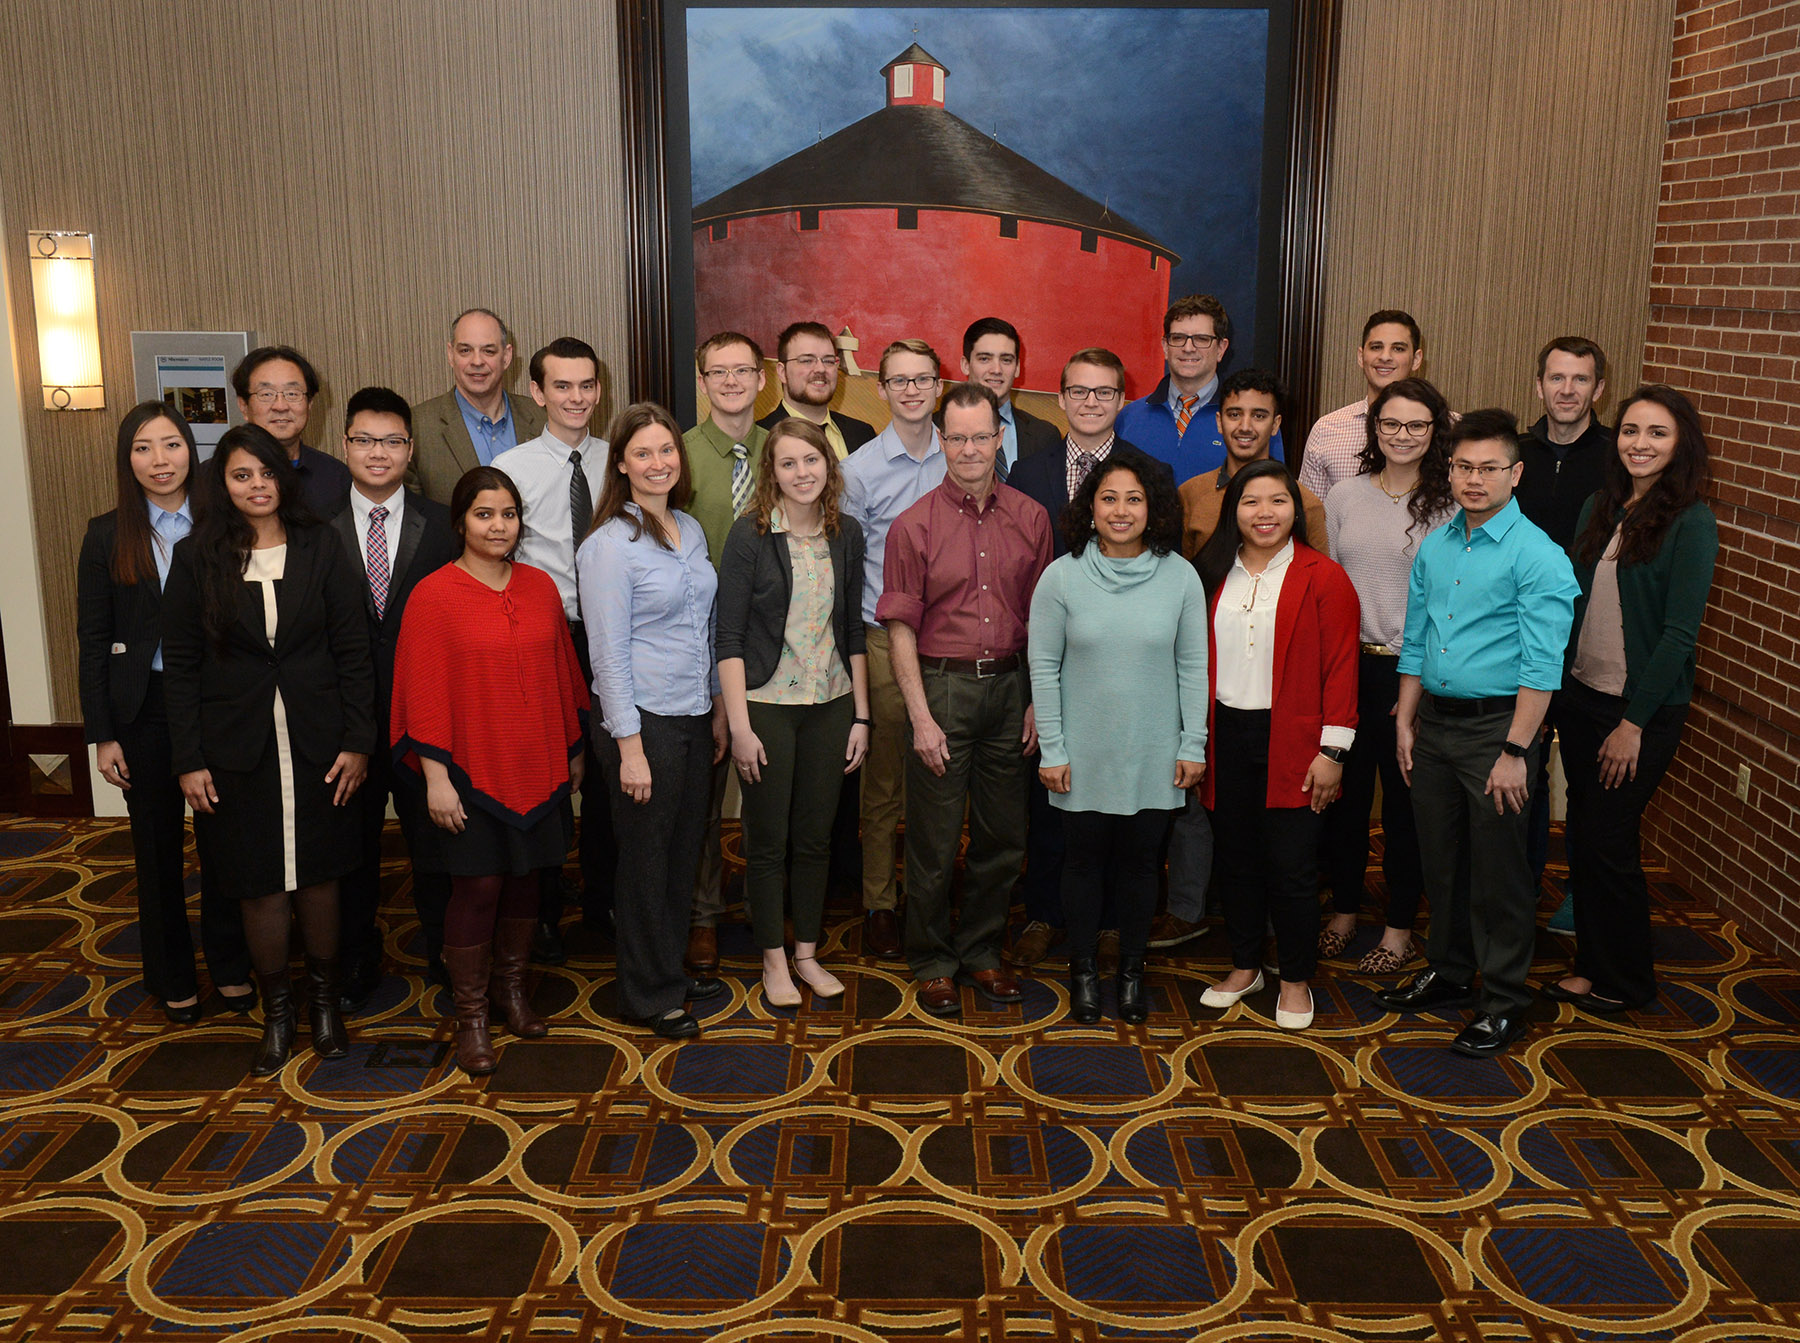 Wichita State student scholars and faculty attendees/presenters at the 16th Annual K-INBRE Symposium, January 13-14, in Overland Park, Kansas.